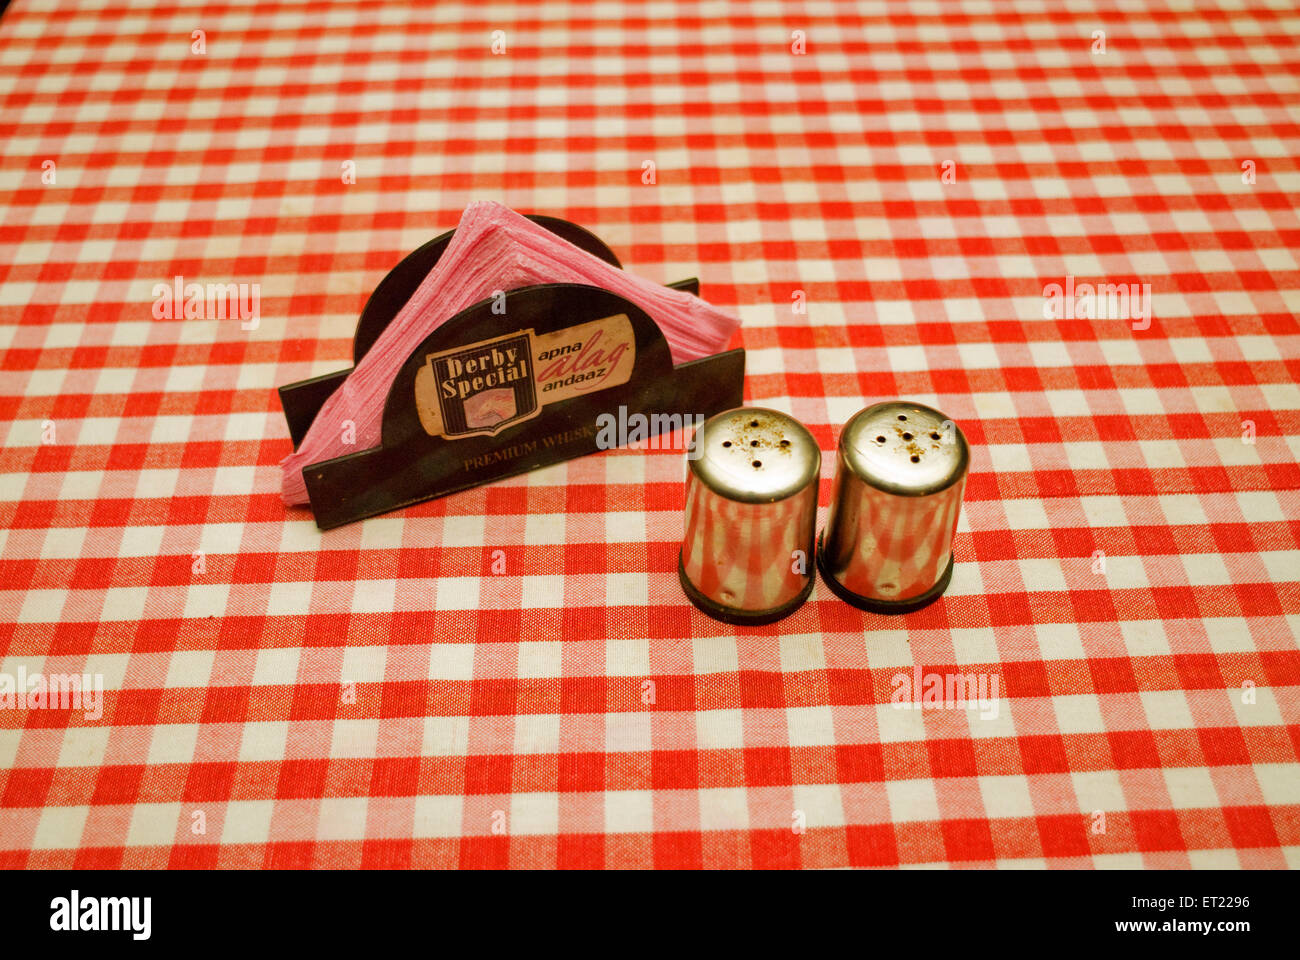 Steel salt and pepper dispensers and paper napkin holder on red and white checked tablecloth ; Goa ; India - Stock Image